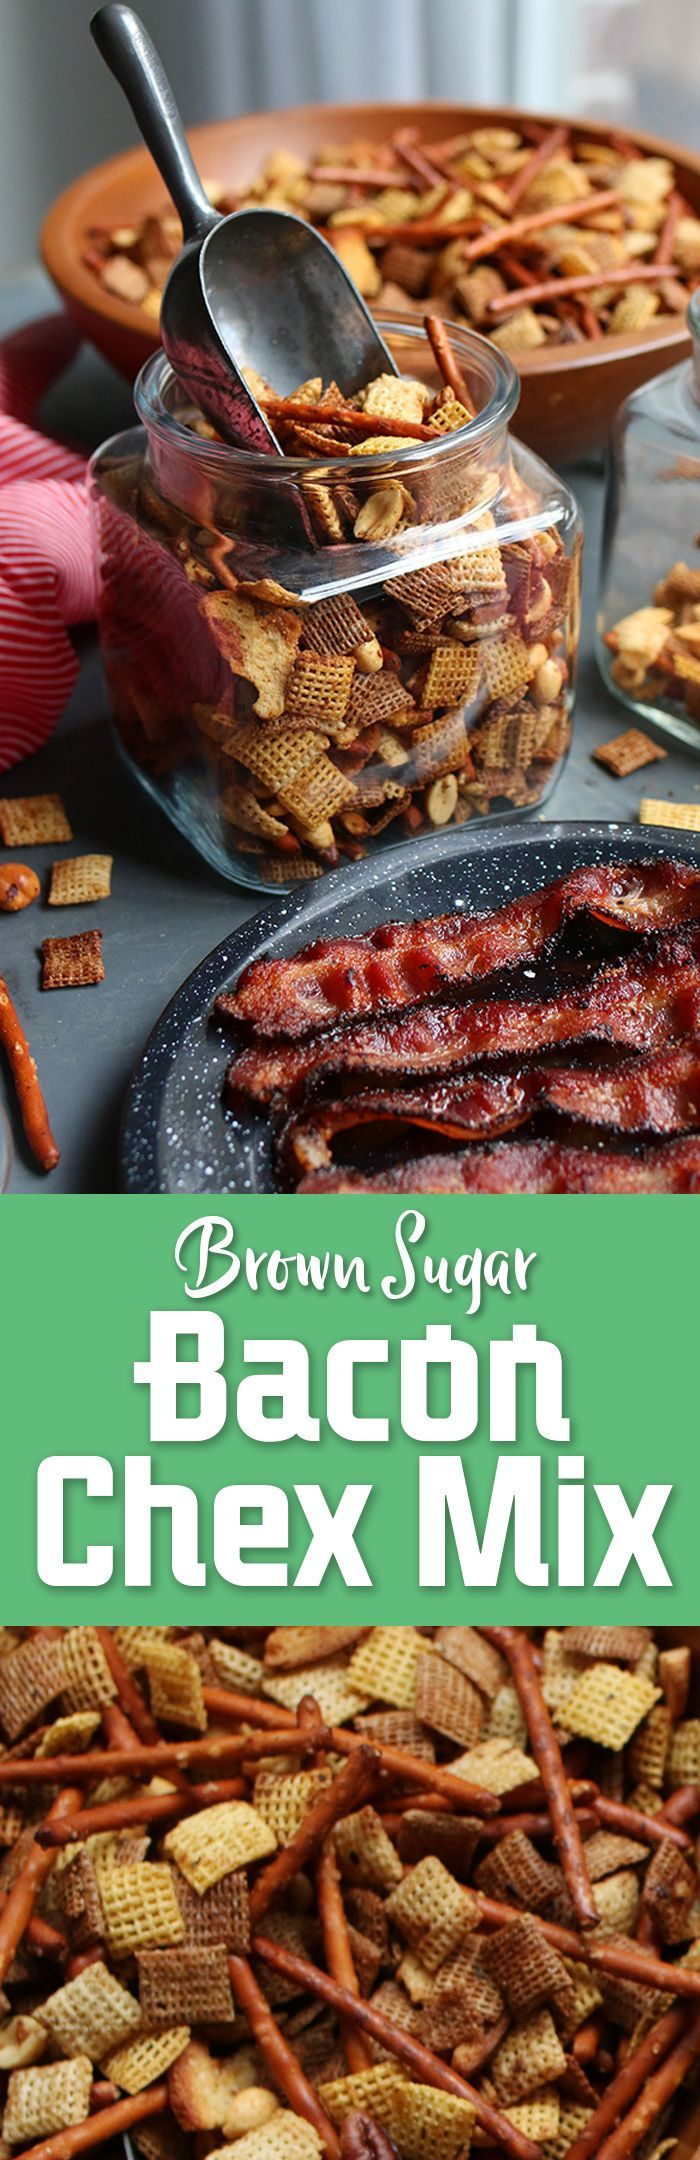 Easy Brown Sugar Bacon Chex Mix recipe! With a burst of bacon flavor and a hint of sweetness, you'll want to eat this incredible snack all day. Perfect party food! Free printable gift tags for simple DIY holiday homemade gifts in a jar. #iworkwithchex #madewithchex